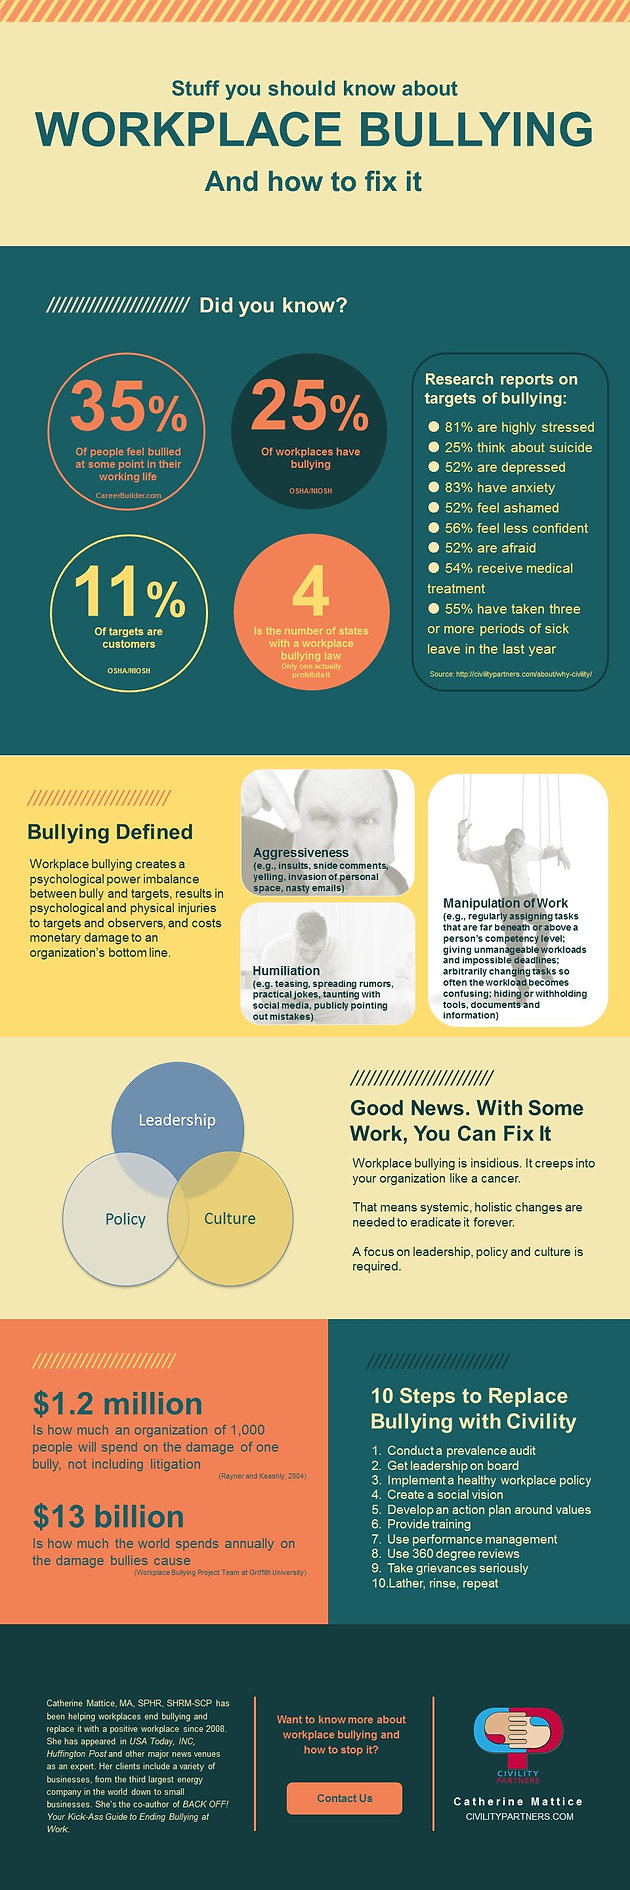 What to Know About Workplace Bullying | National Workplace